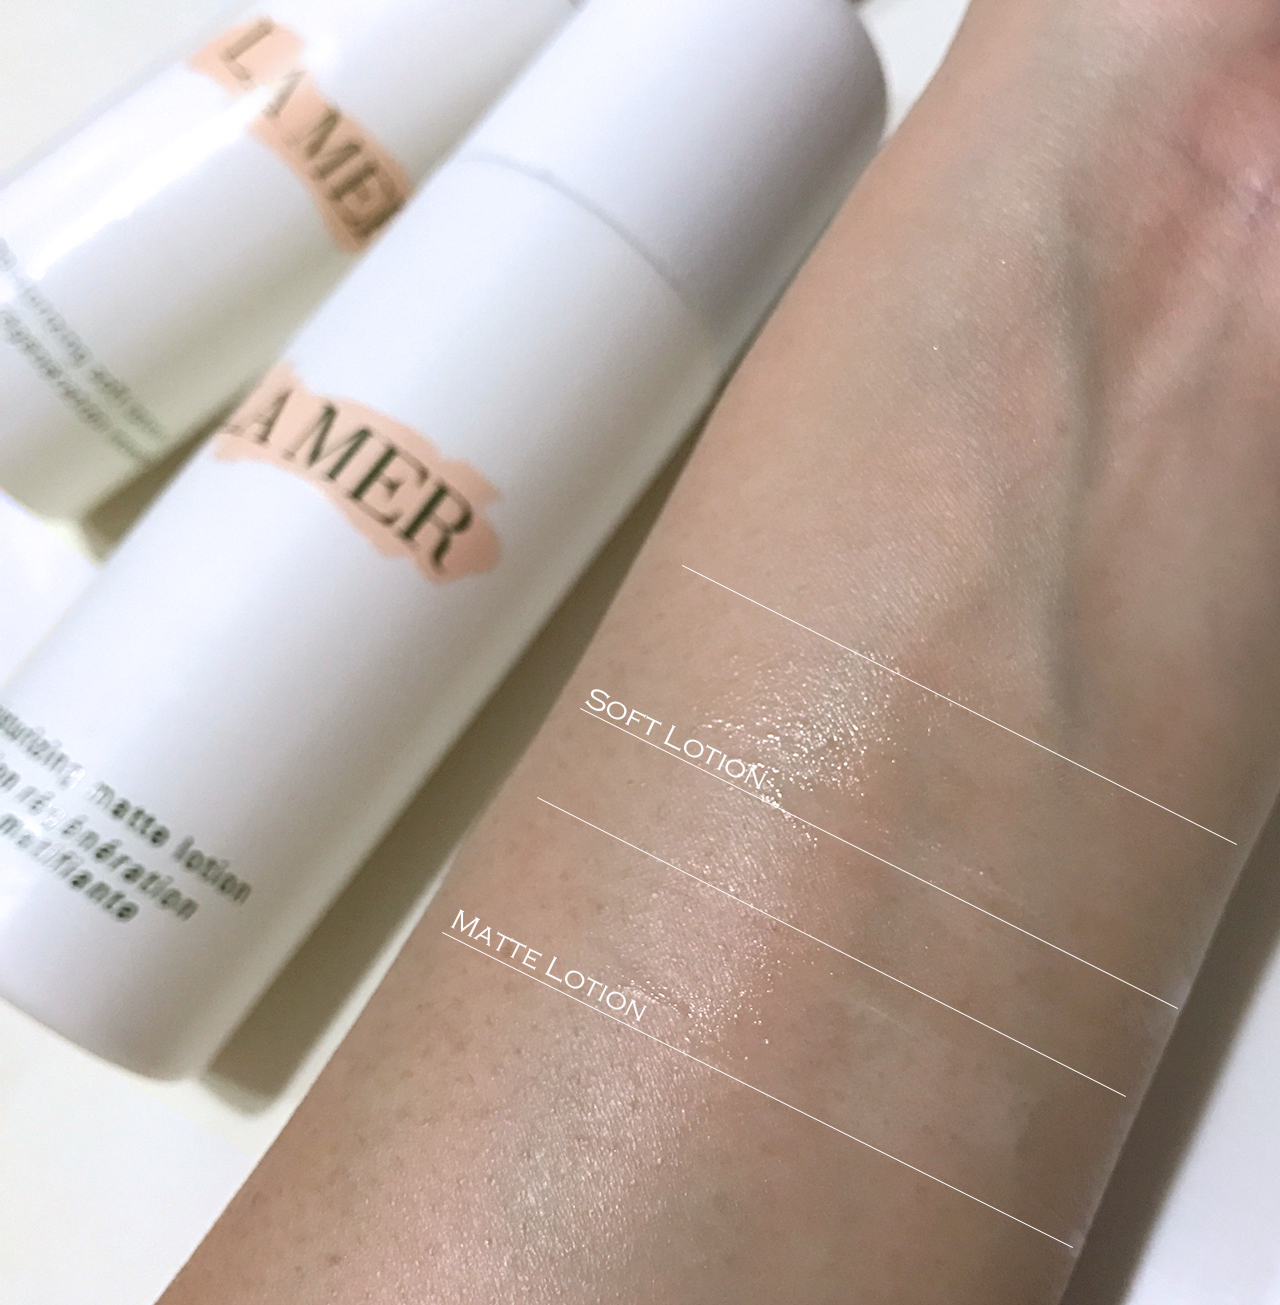 La Mer Moisturizing Matte Lotion vs. Soft Lotion swatch comparison